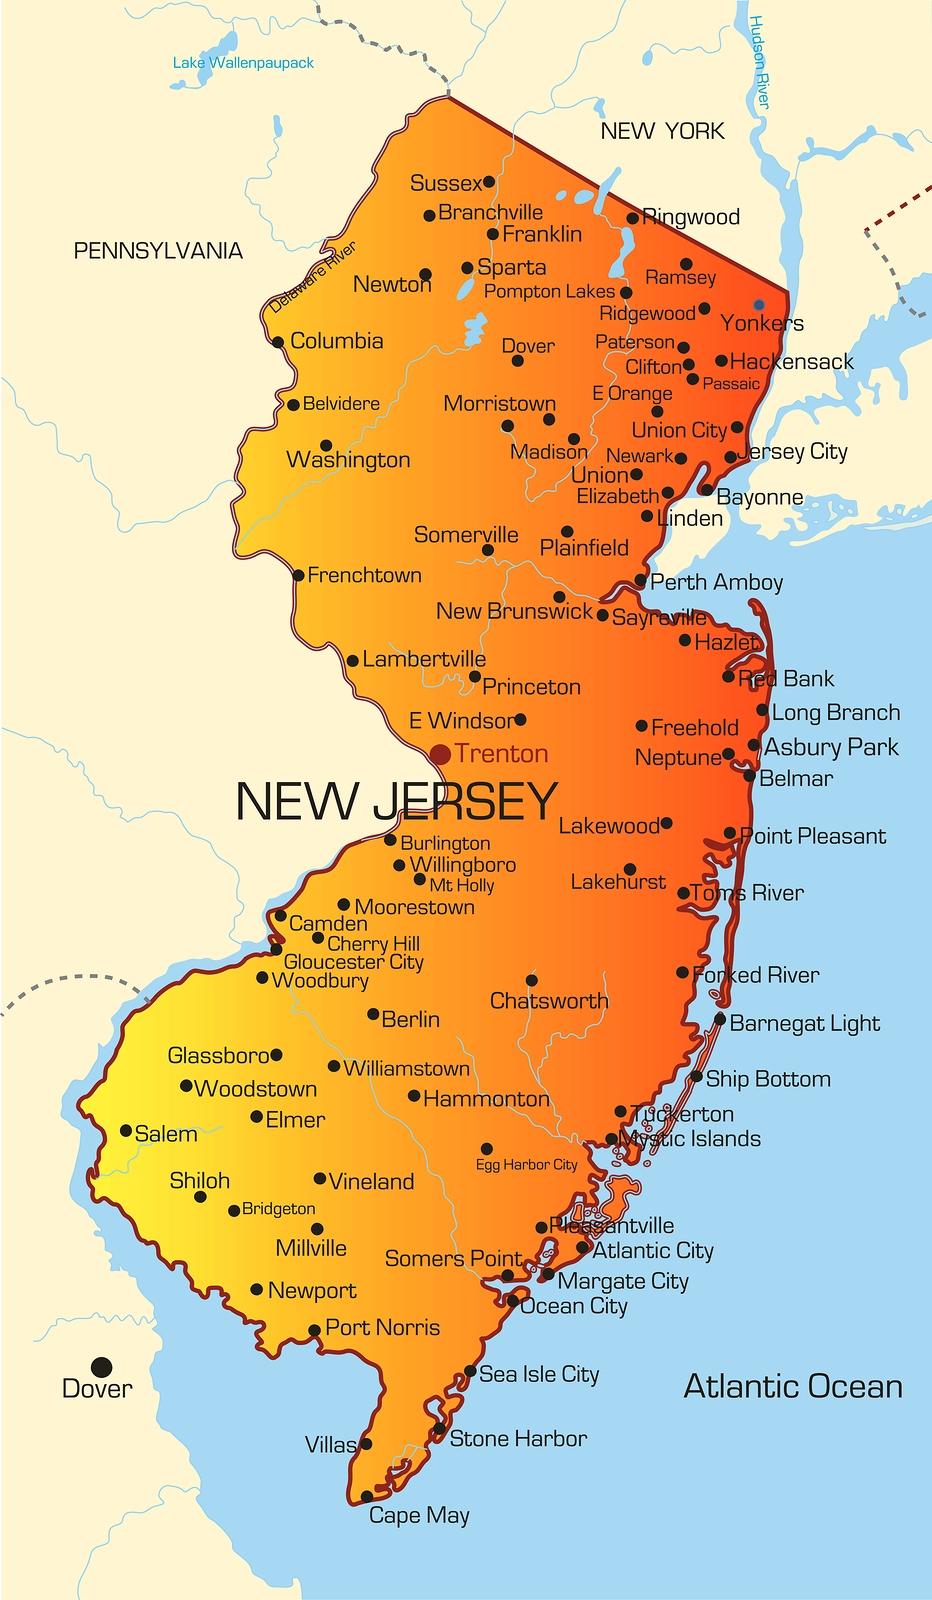 Bergen county map clipart new jersey.